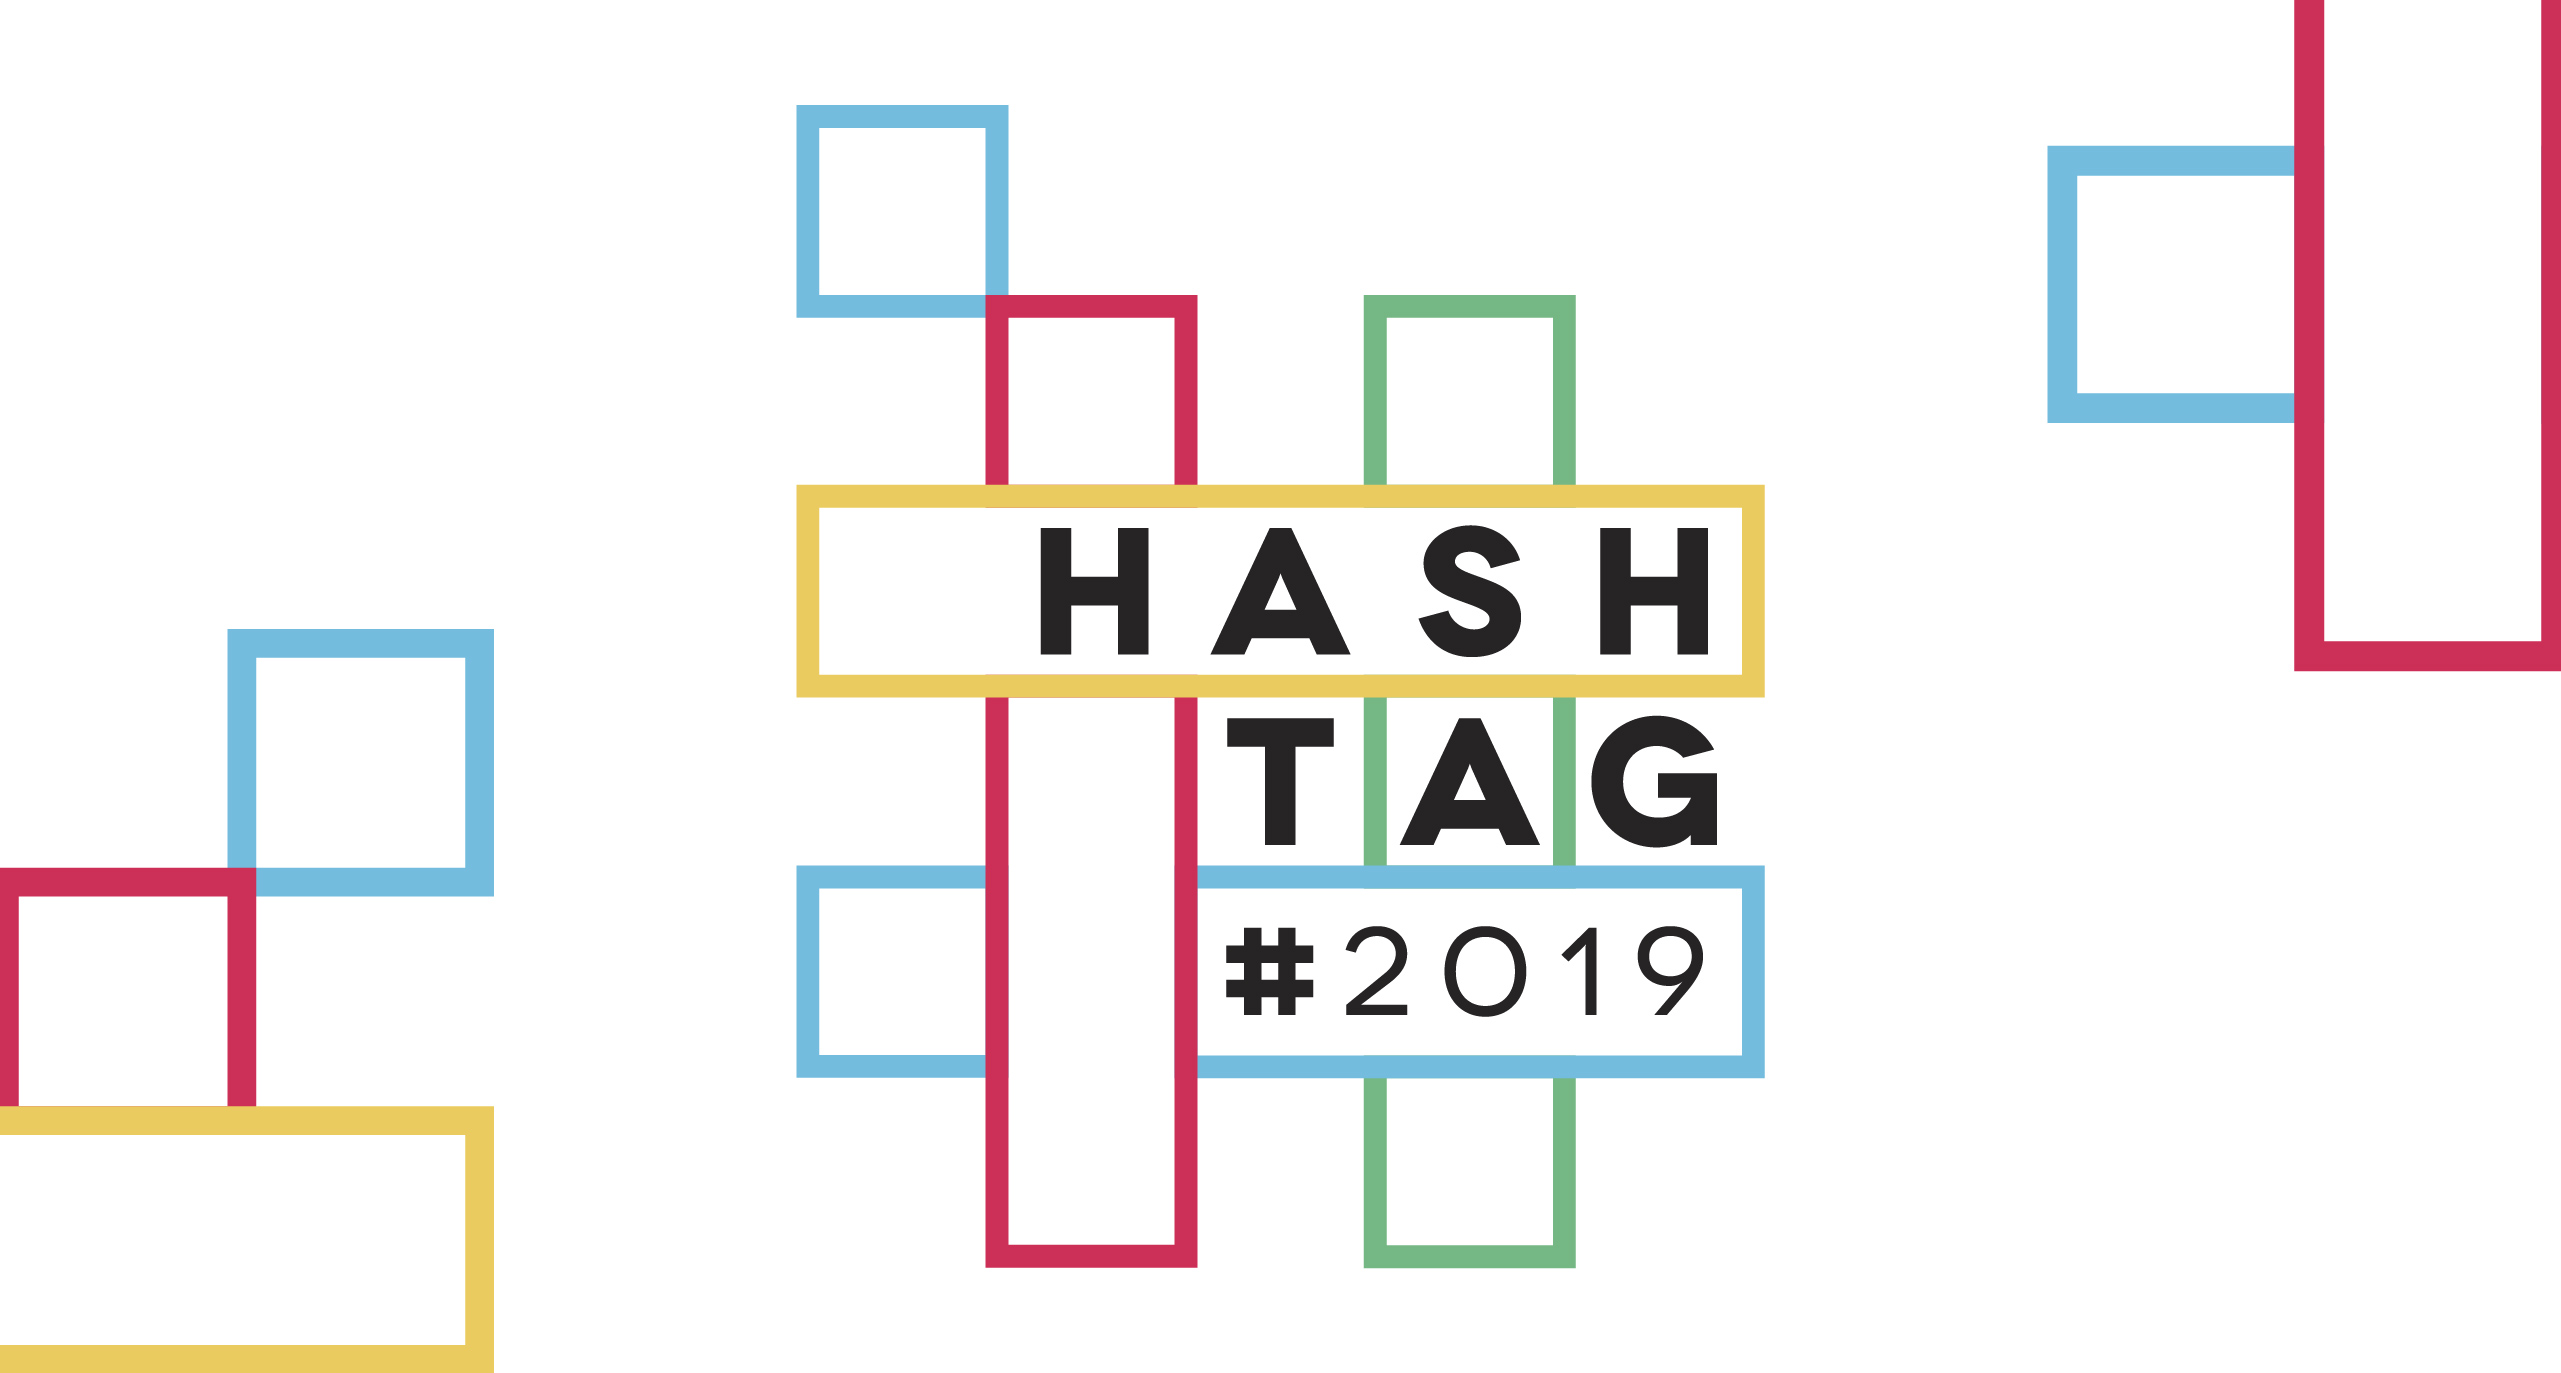 Hashtag Design 2019 - Blisq Creative